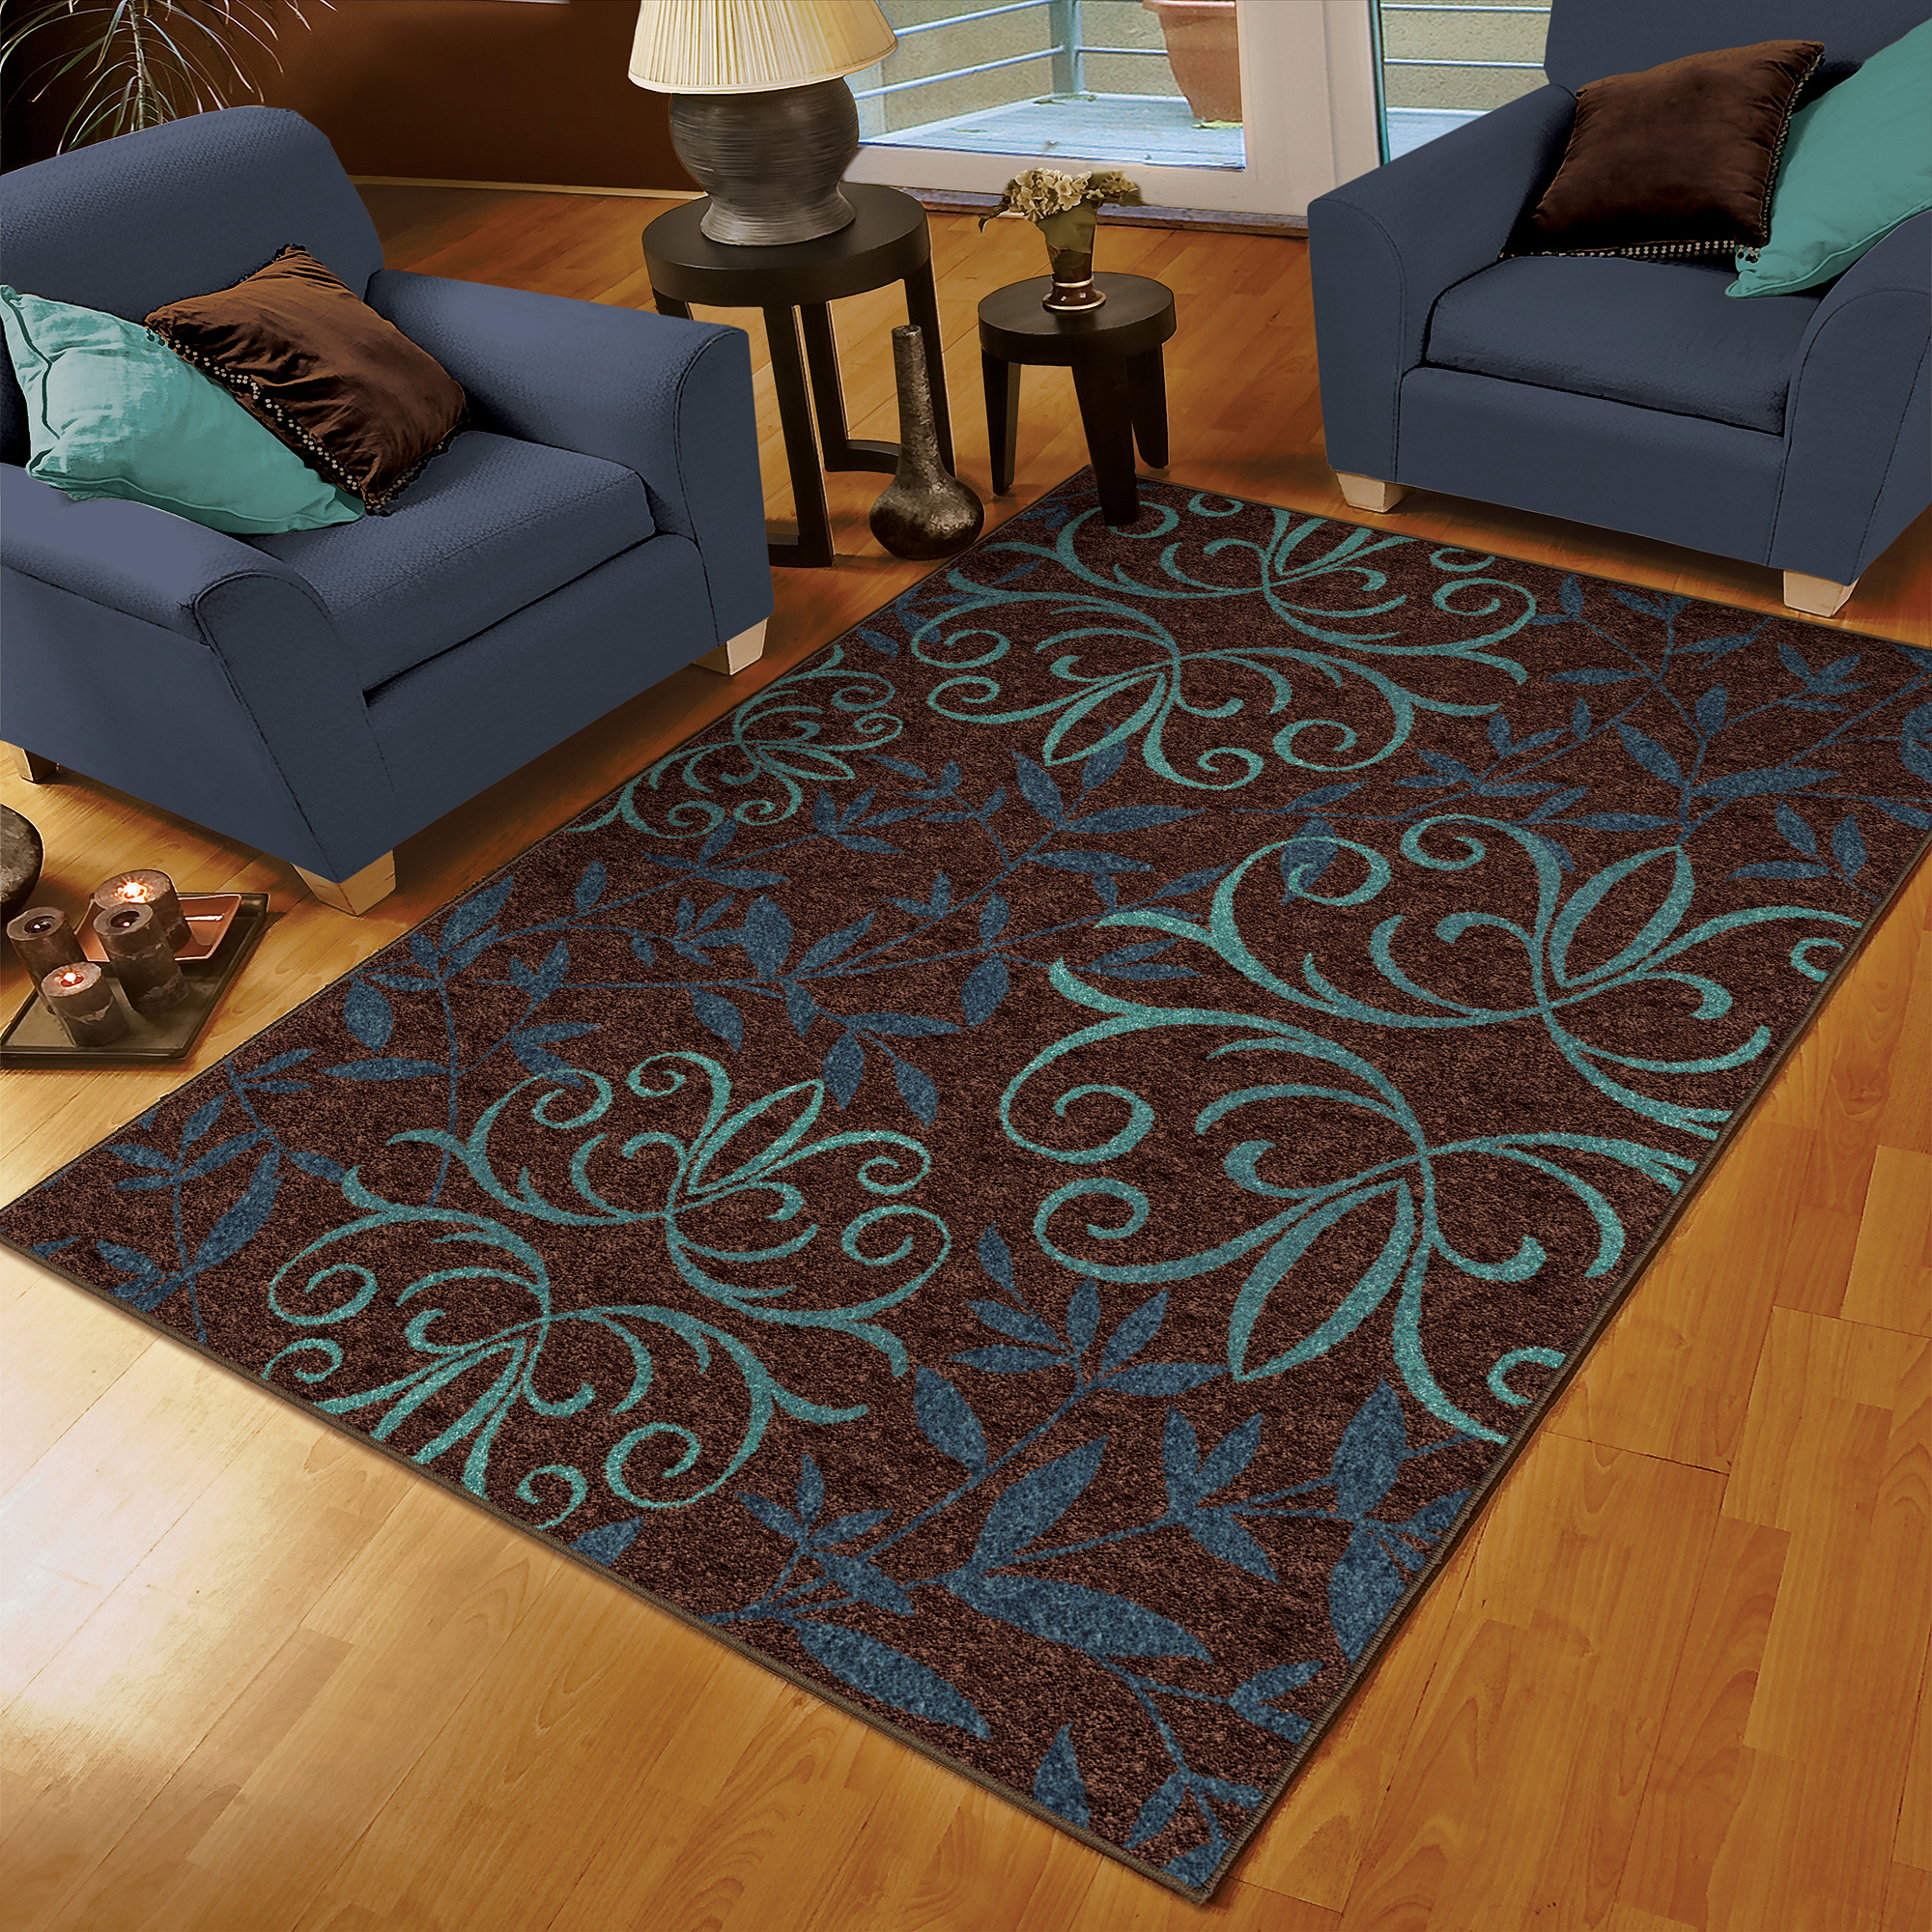 Target Living Room Rugs All Images Threshold Diamond Rug From Target Living Room Tv